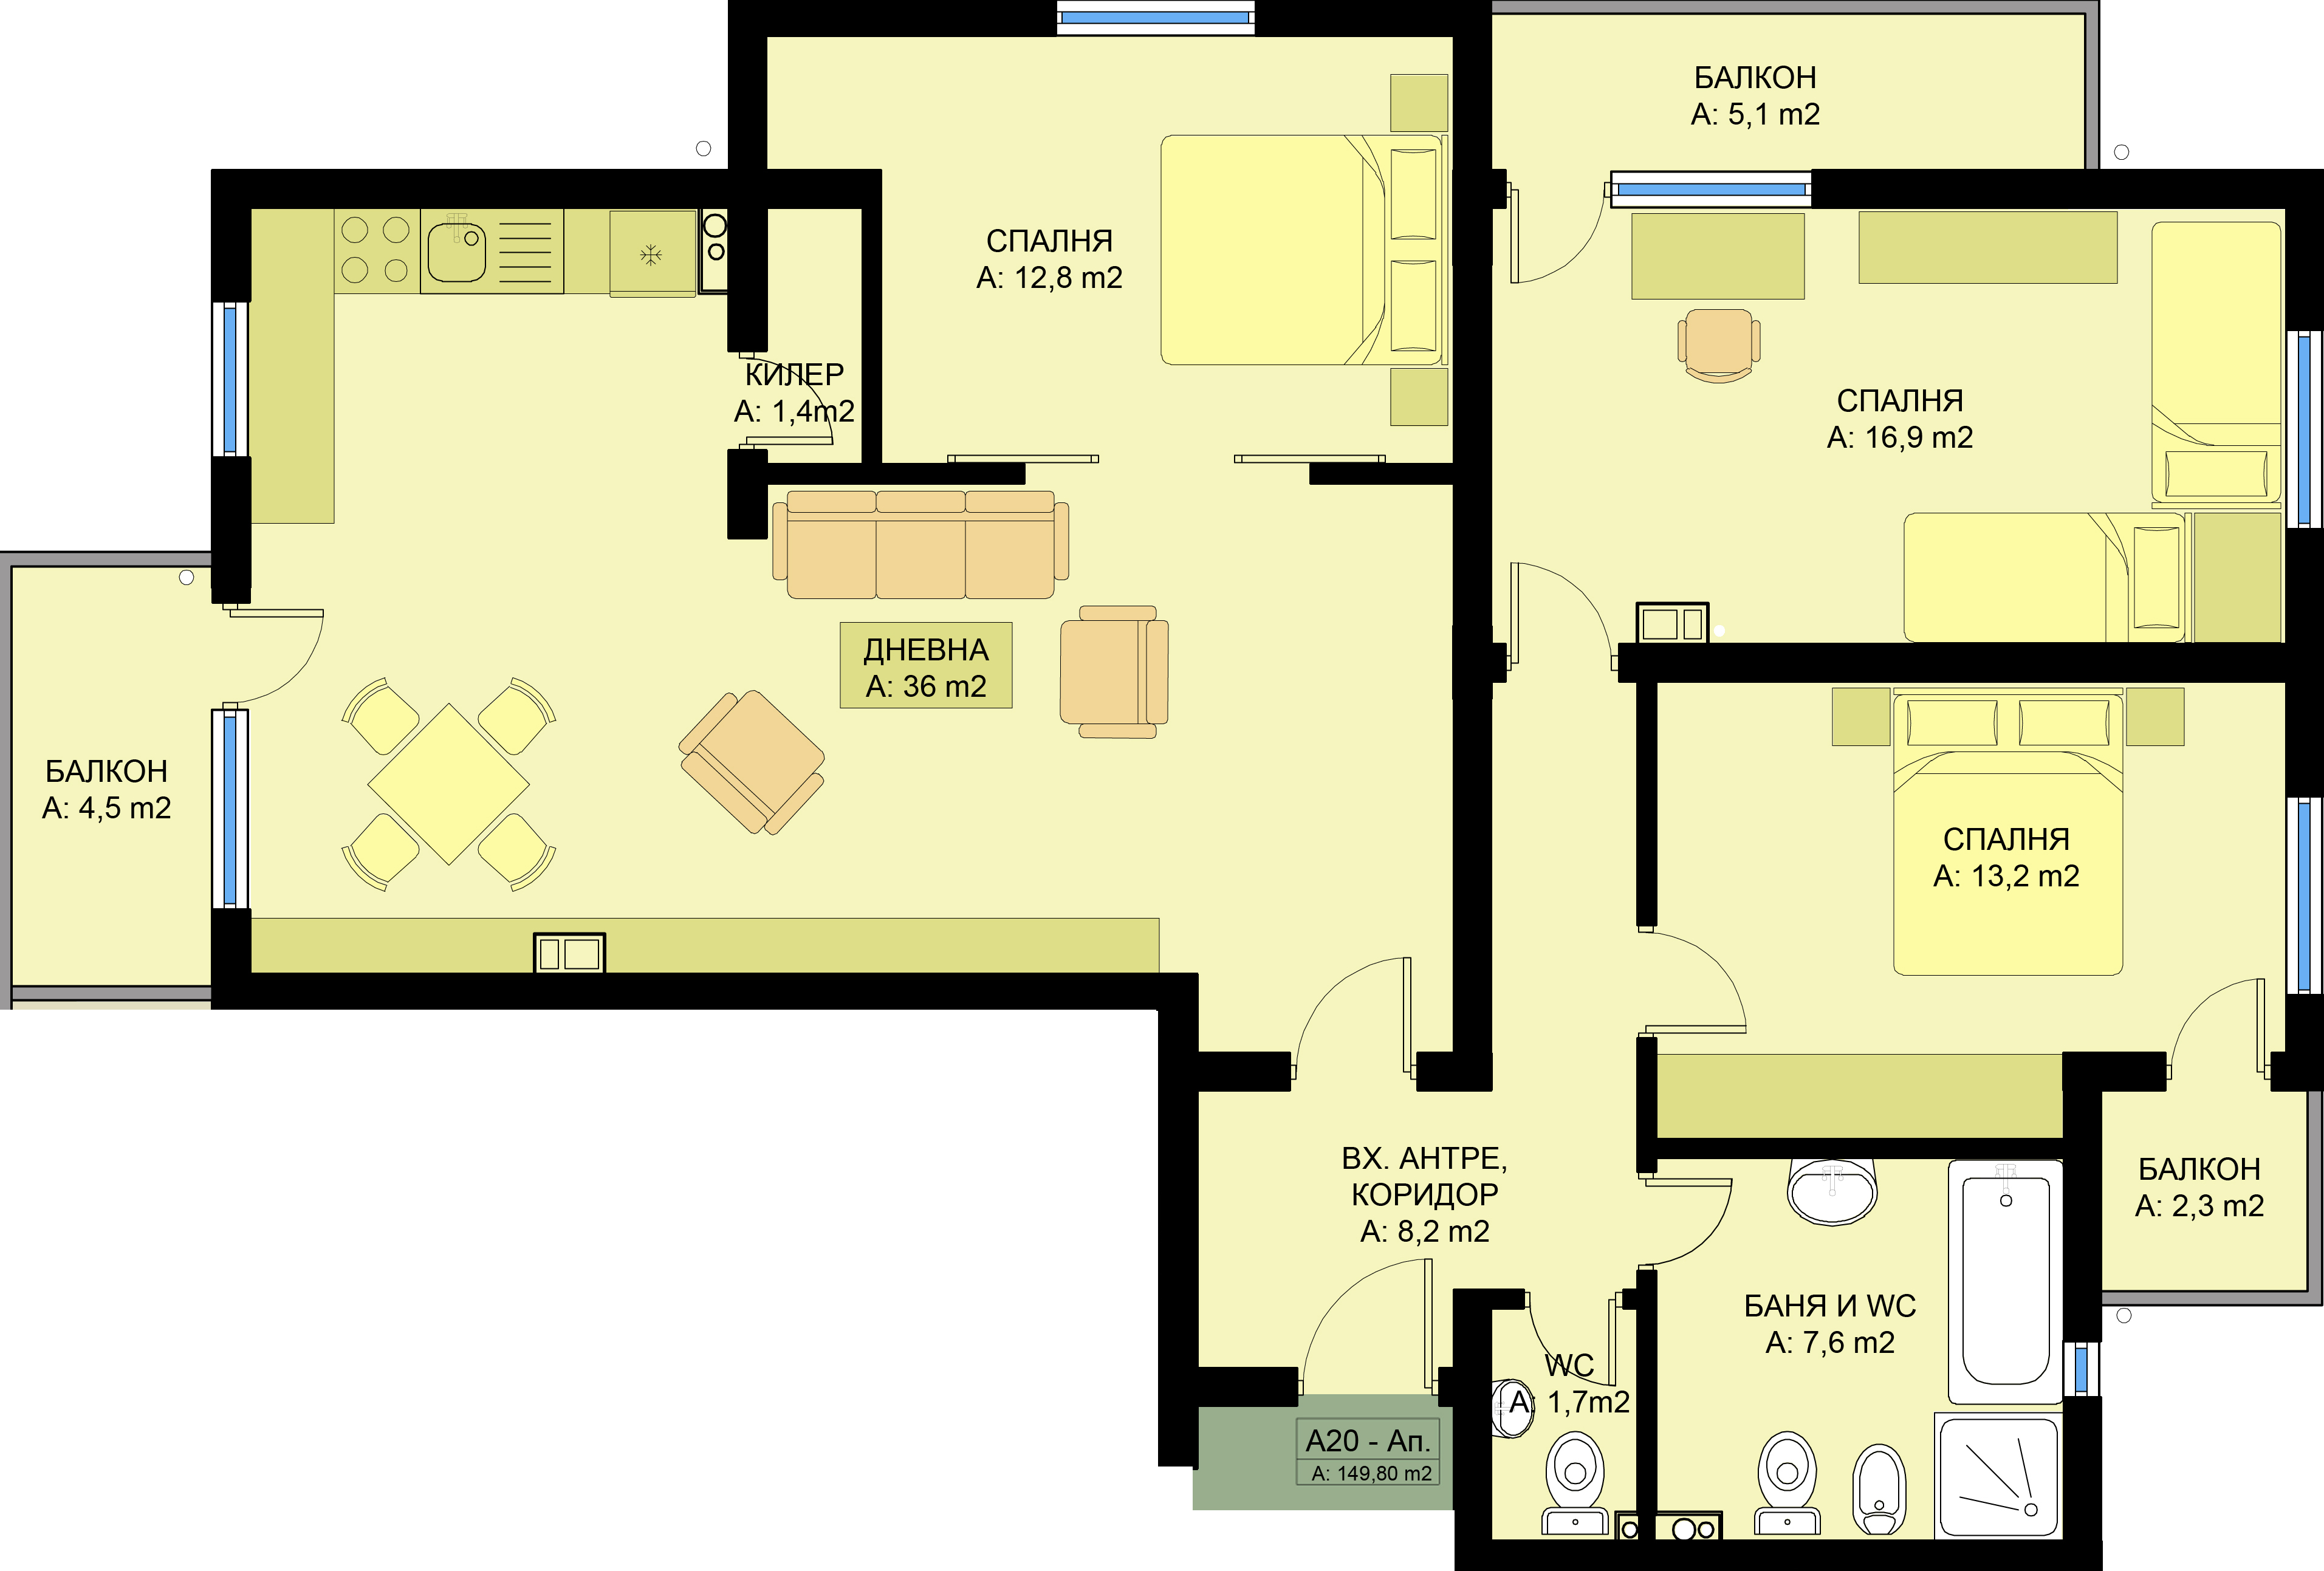 Complex family 4 three bedroom apartments www for Apartment complex layout